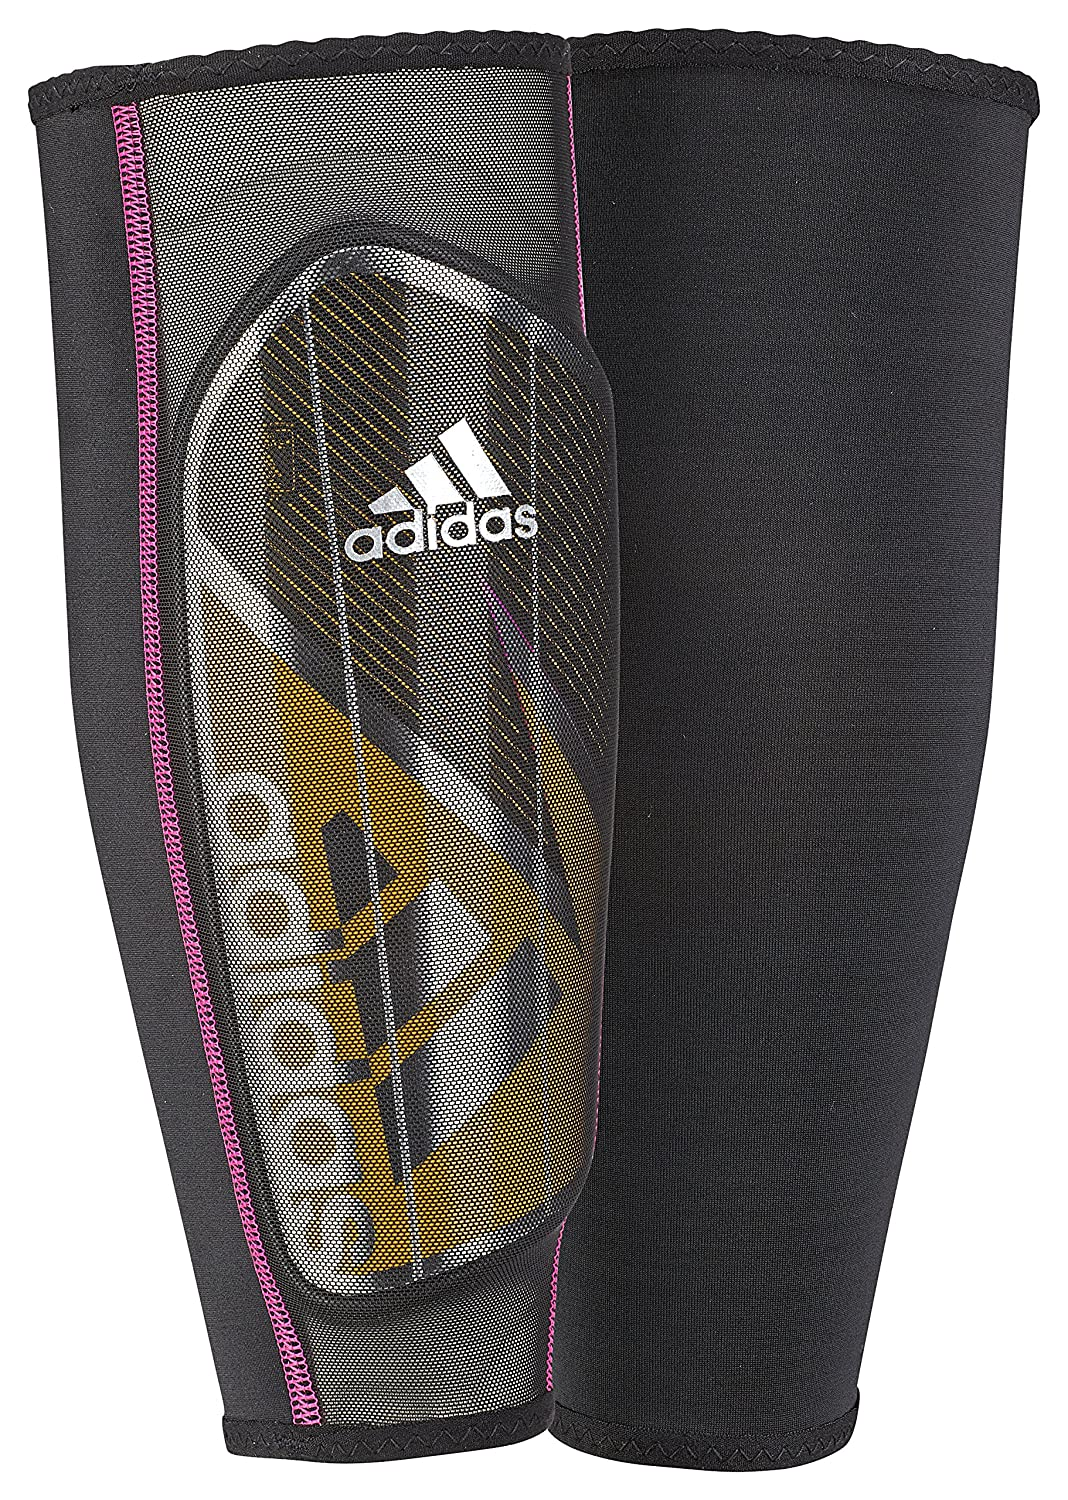 adidasゴーストプロシンガードすねあて B0105YIOSU X-Small|Solar Gold/Black/Shock Pink Solar Gold/Black/Shock Pink X-Small